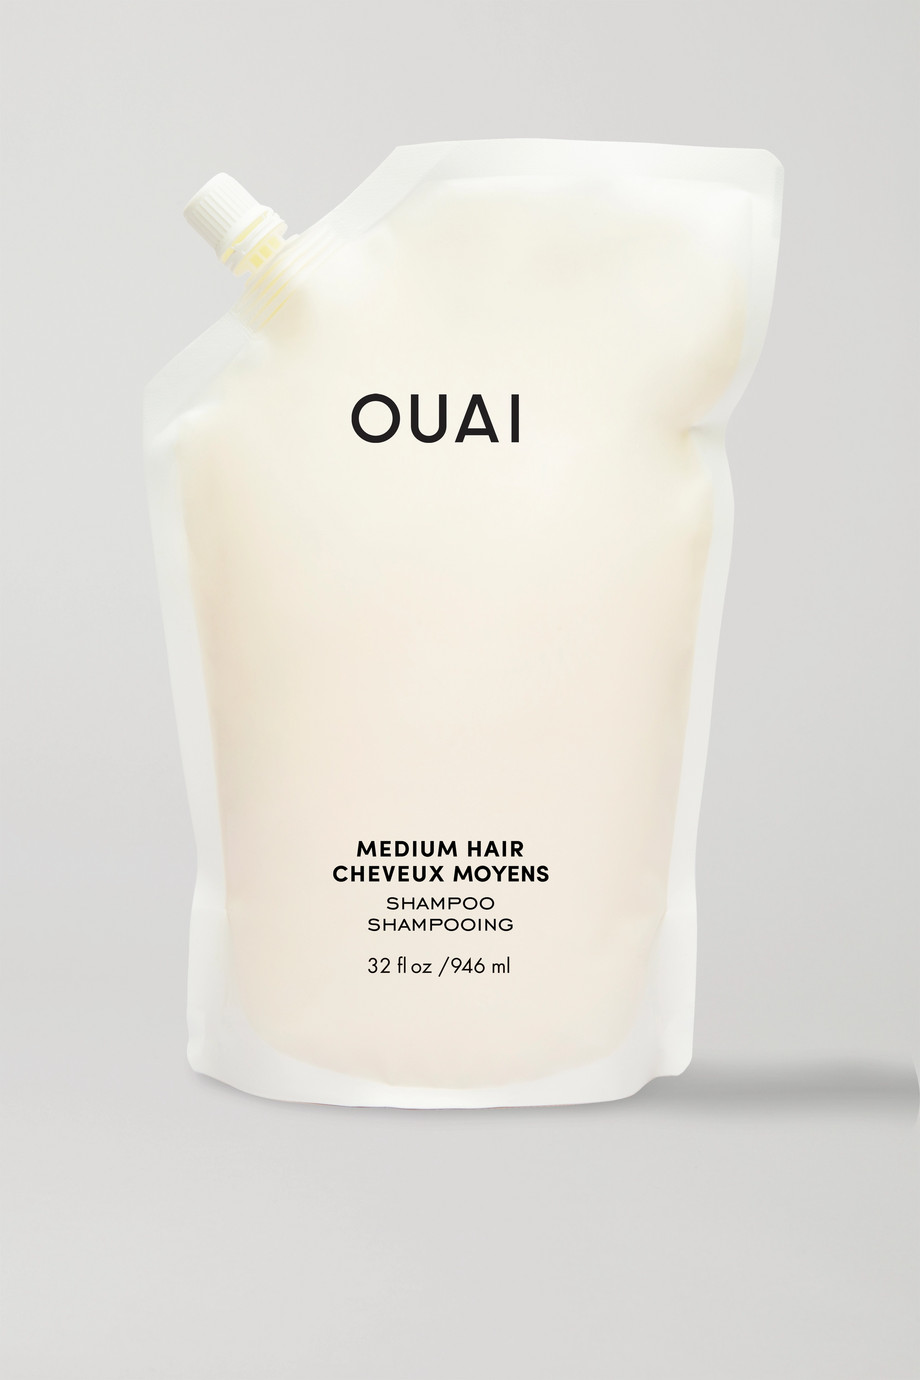 OUAI HAIRCARE Medium Hair Shampoo Refill, 946ml